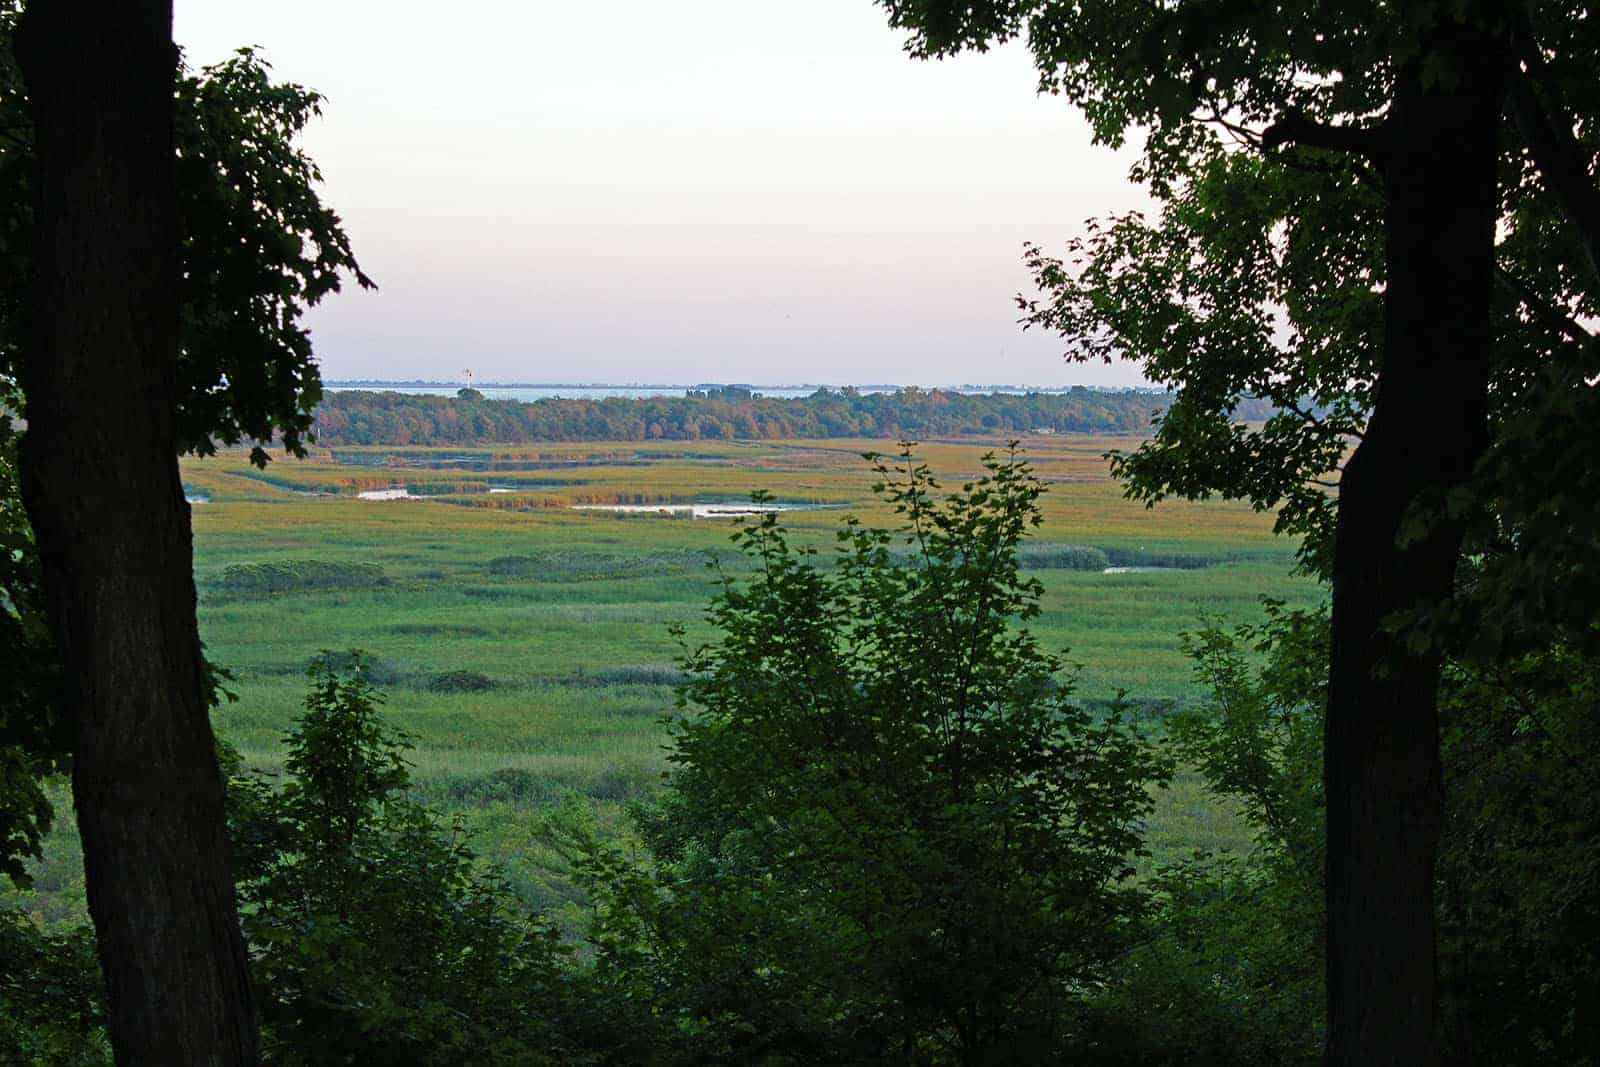 Luxury Glamping at Long Point Eco Adventures